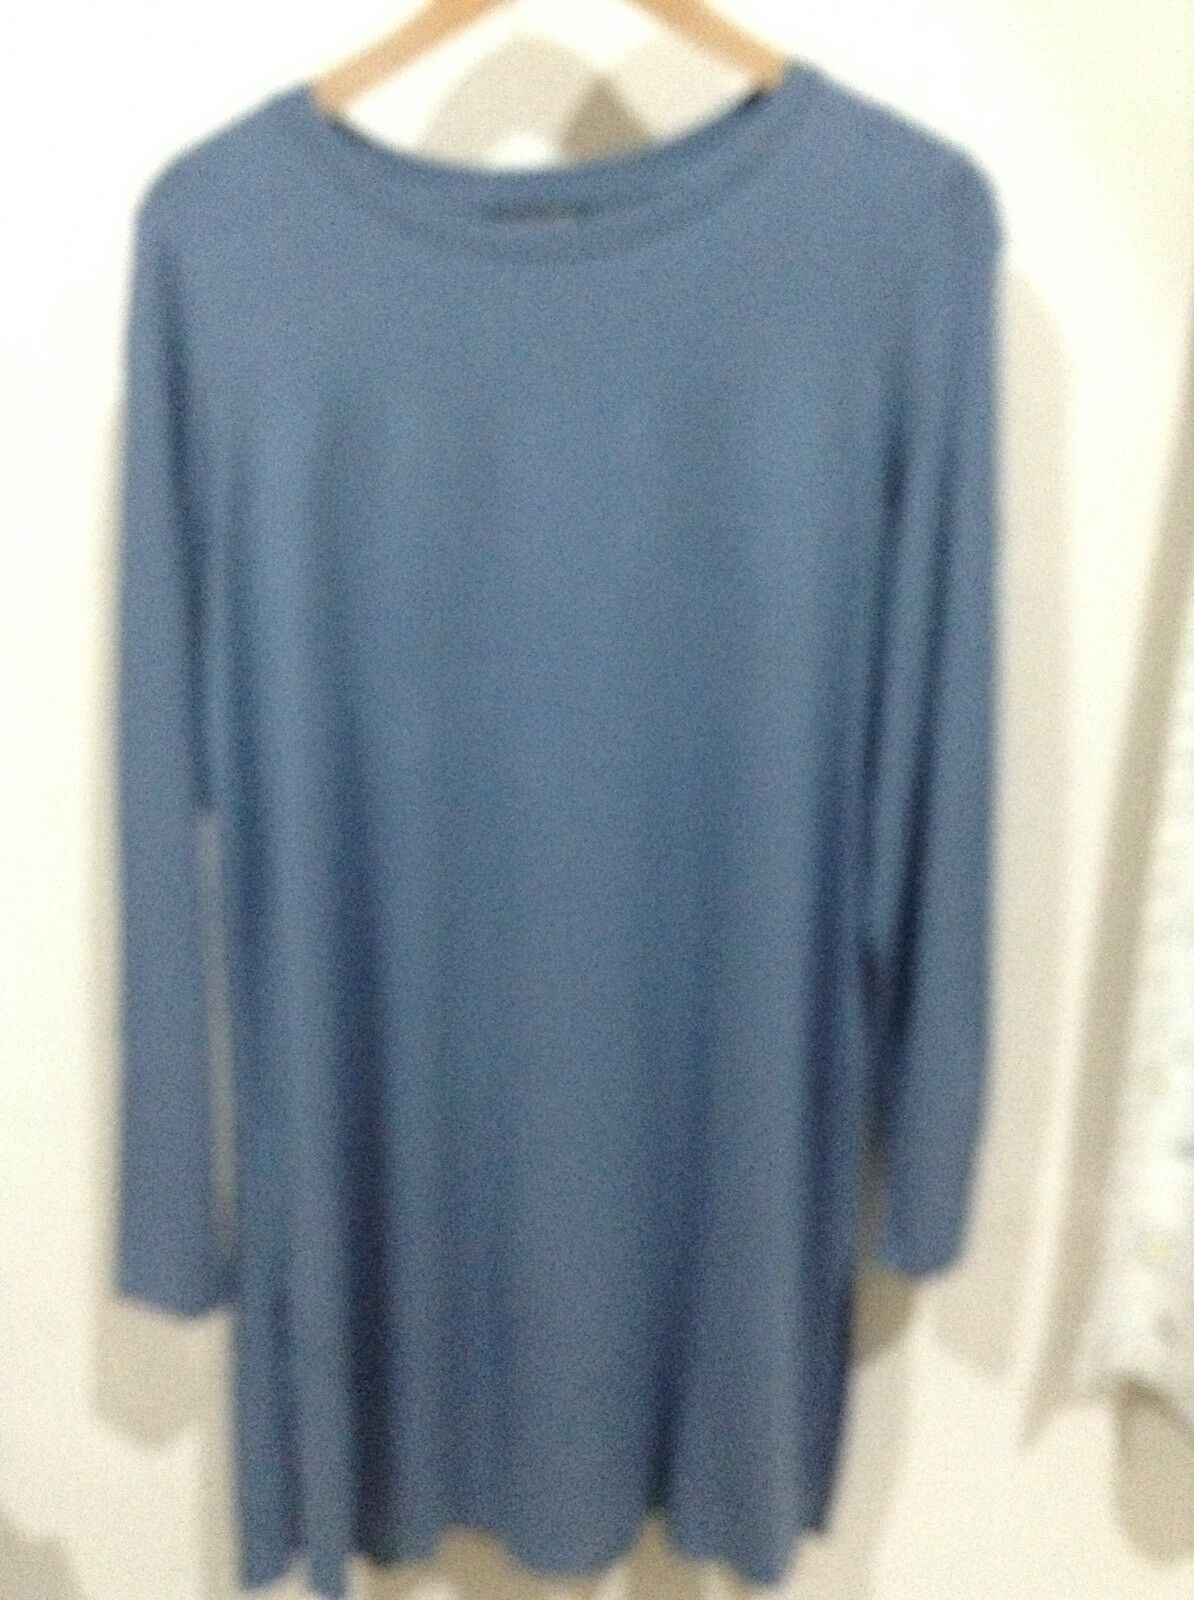 Eileen Fisher Girocollo Girocollo Girocollo Tunica in stagno blu. Taglia media. RRP d573a2